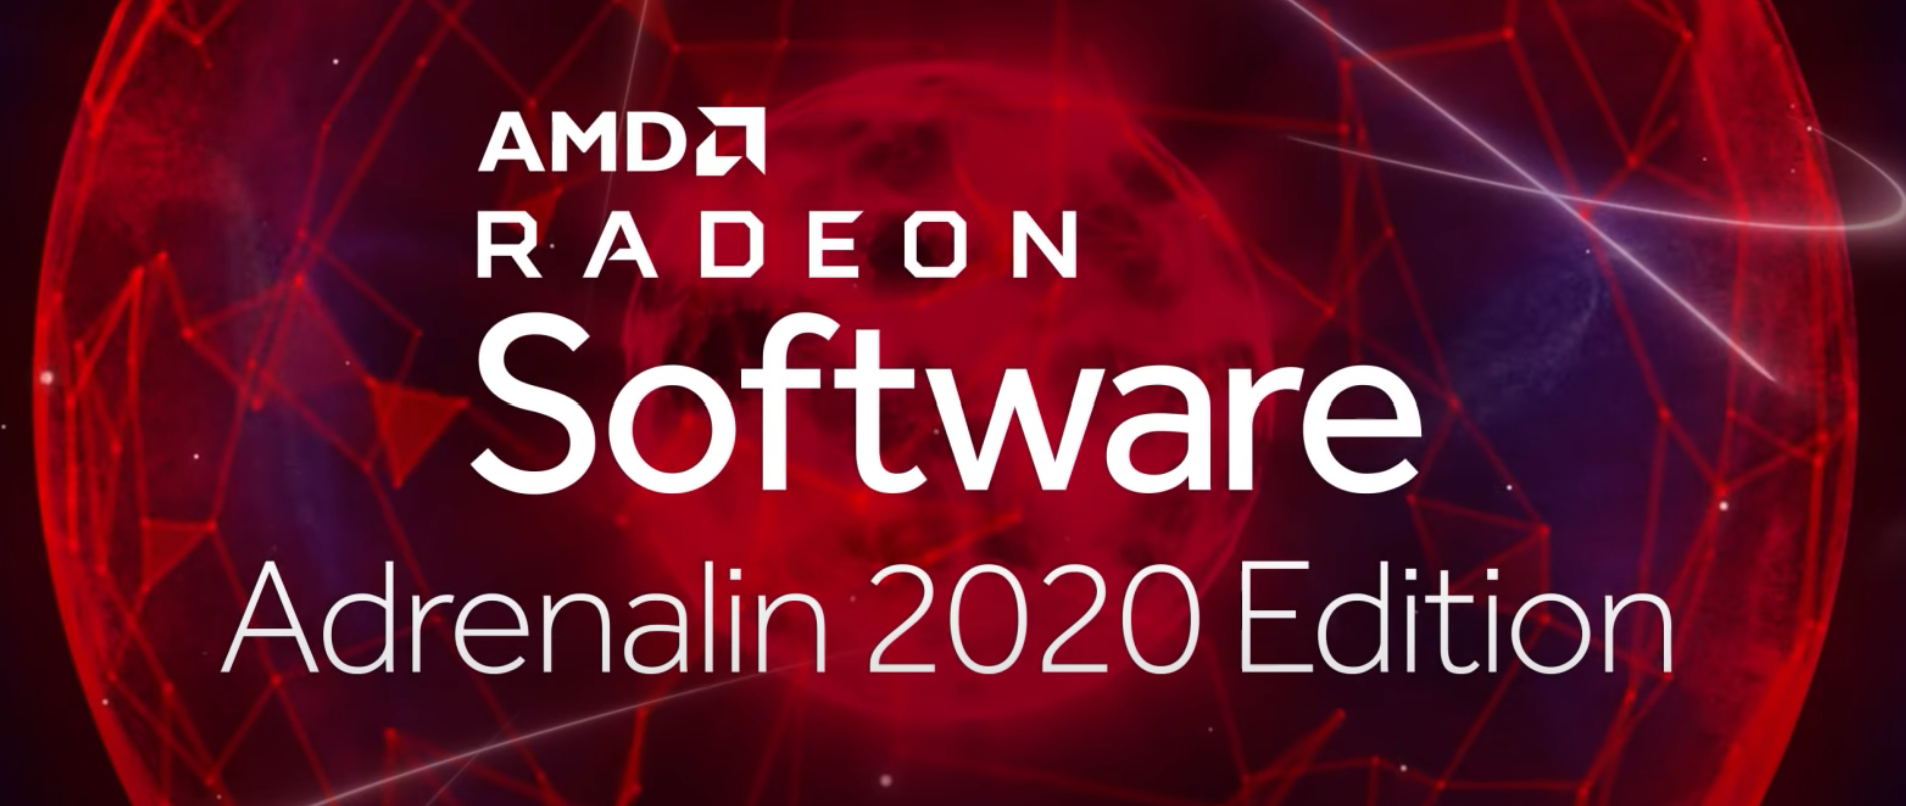 AMD Radeon Adrenalin 2020